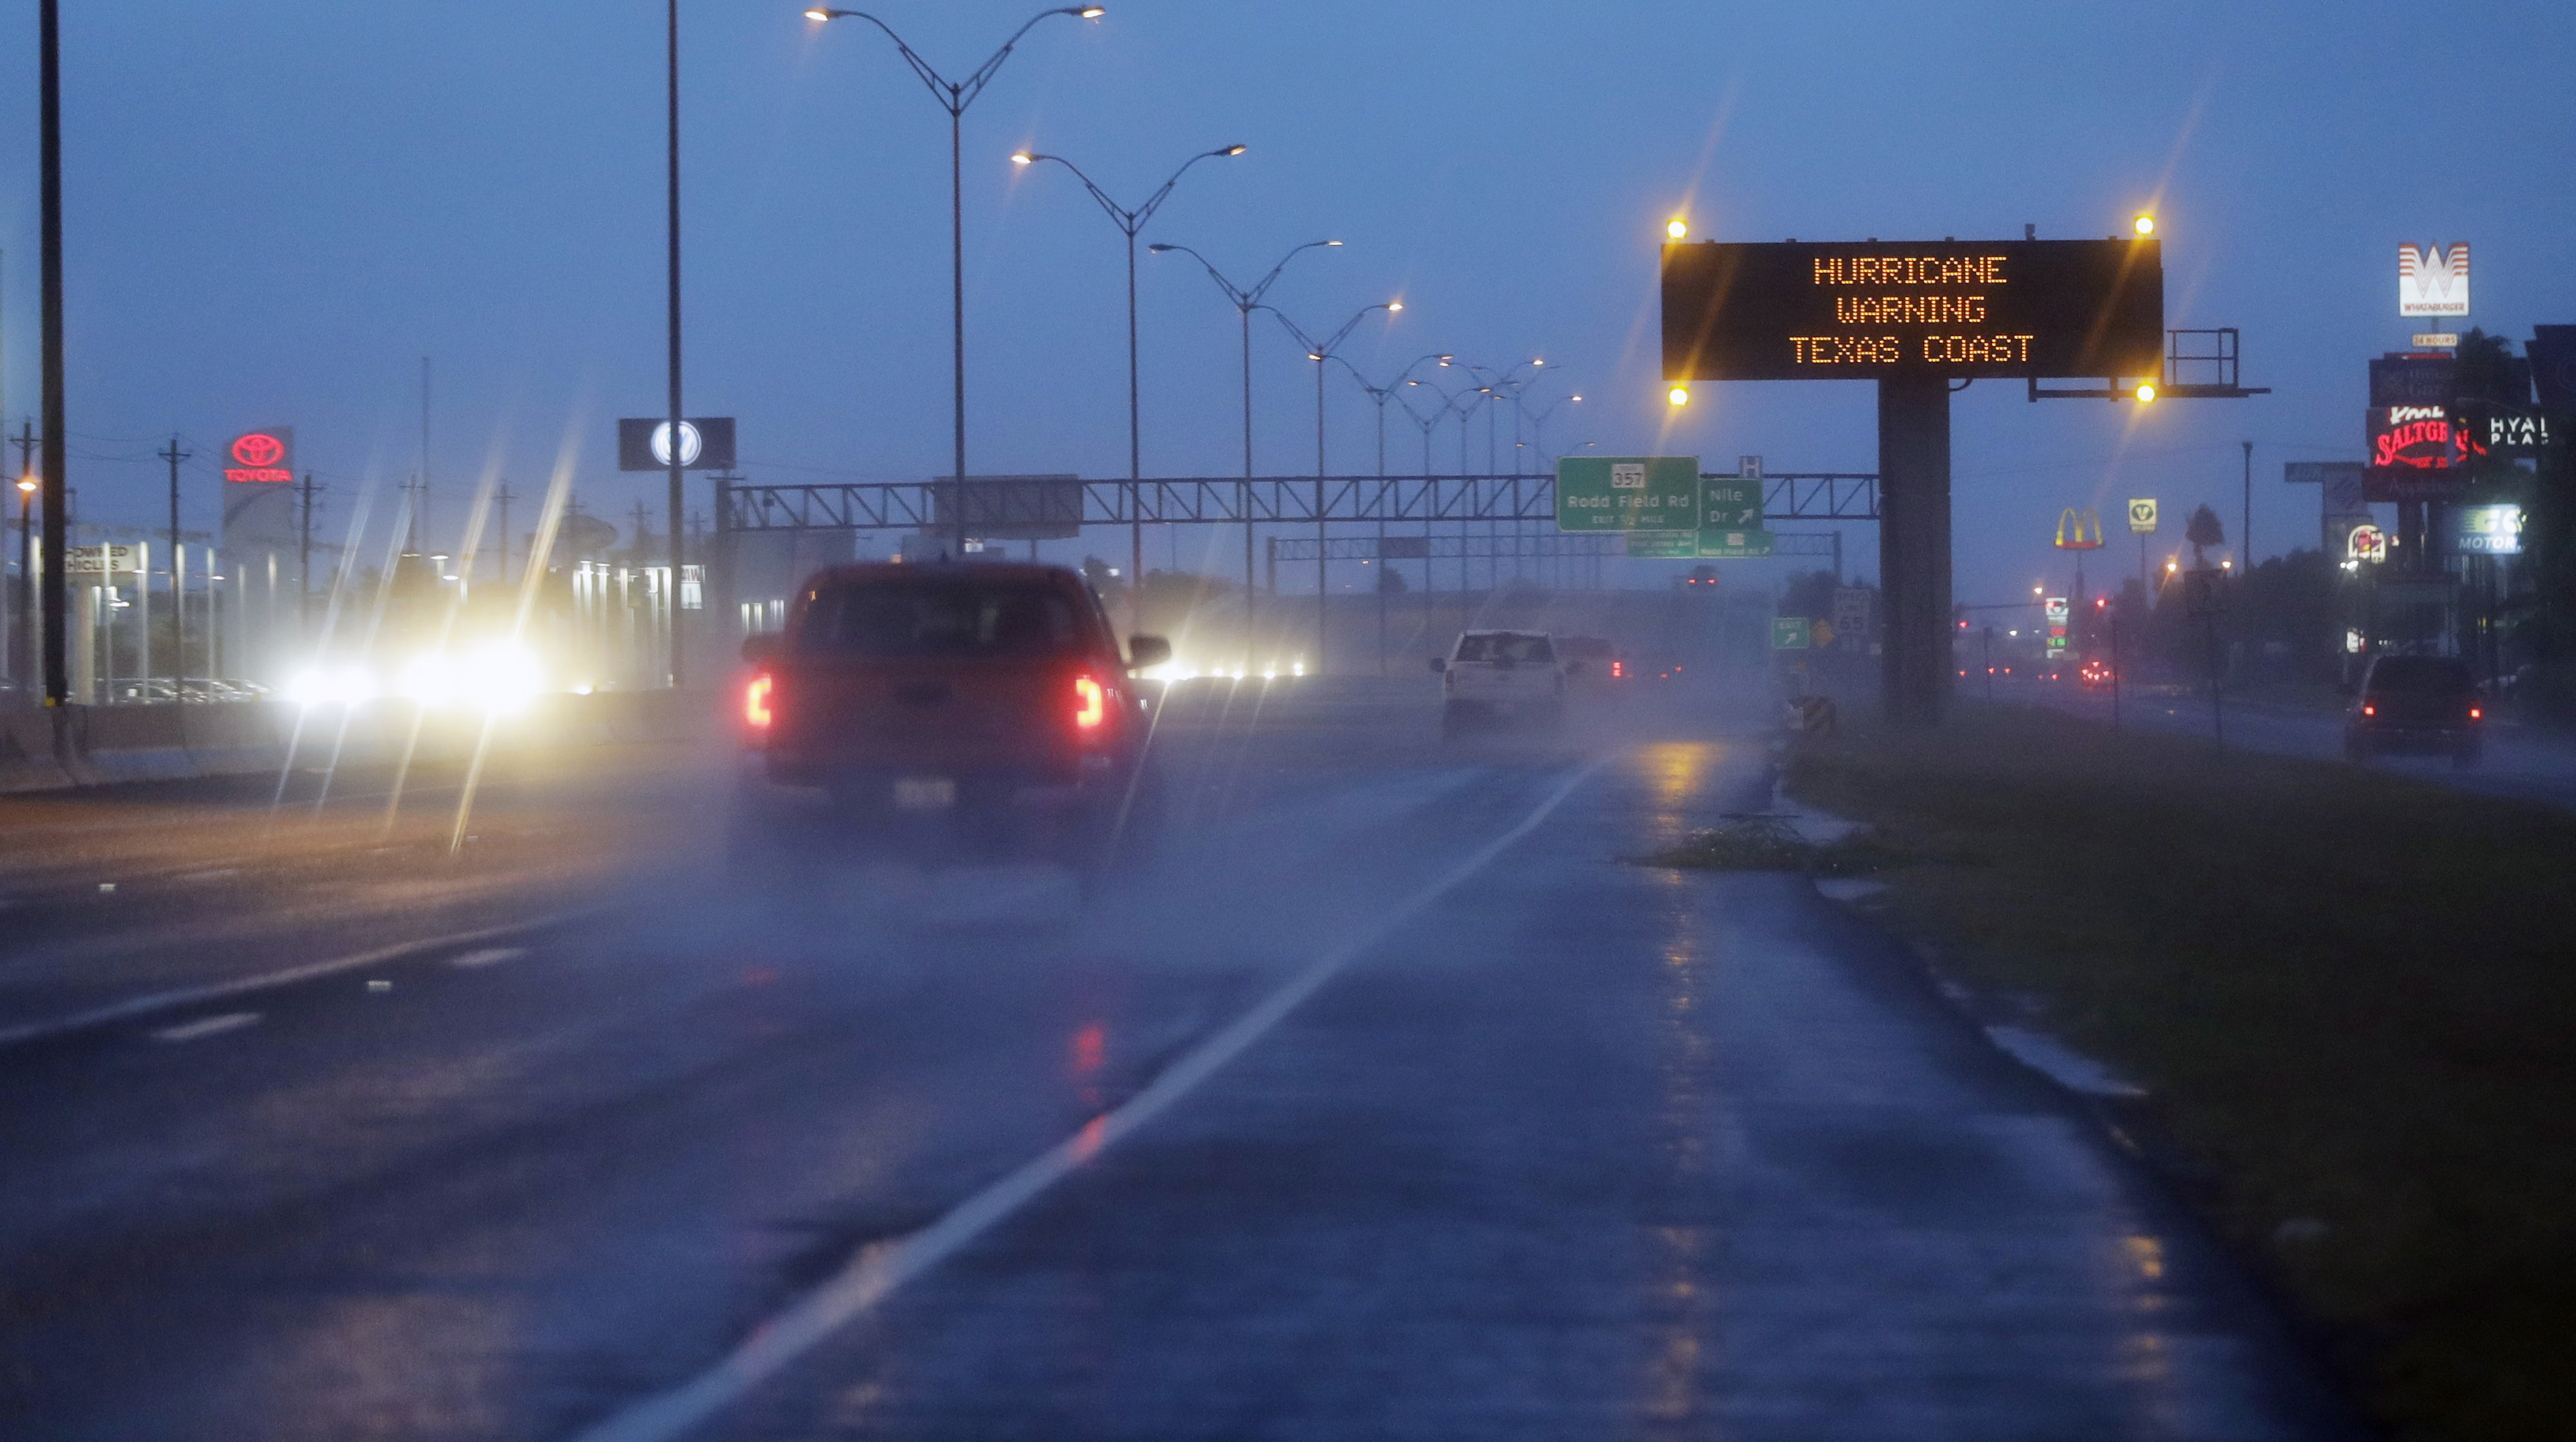 """Motorists pass a warning sign  as Hurricane Harvey approaches the Gulf Coast area Friday, Aug. 25, 2017, in Corpus Christi, Texas.  The slow-moving hurricane could be the fiercest such storm to hit the United States in almost a dozen years. Forecasters labeled Harvey a """"life-threatening storm"""" that posed a """"grave risk"""" as millions of people braced for a prolonged battering. (AP Photo/Eric Gay)"""